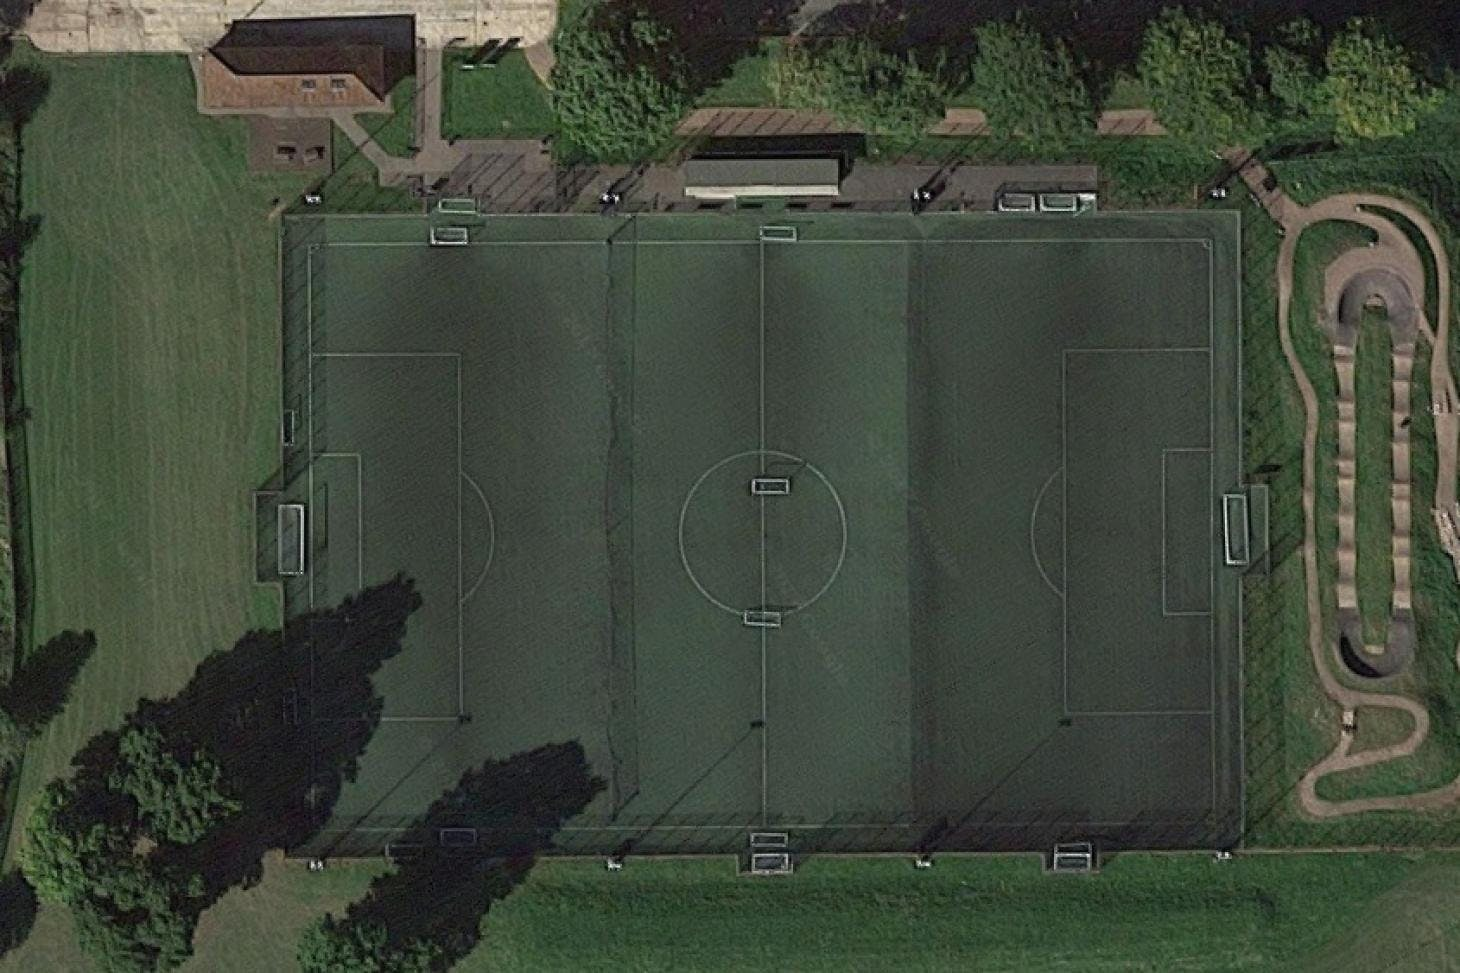 BerkoAstro 5 a side | 3G Astroturf football pitch